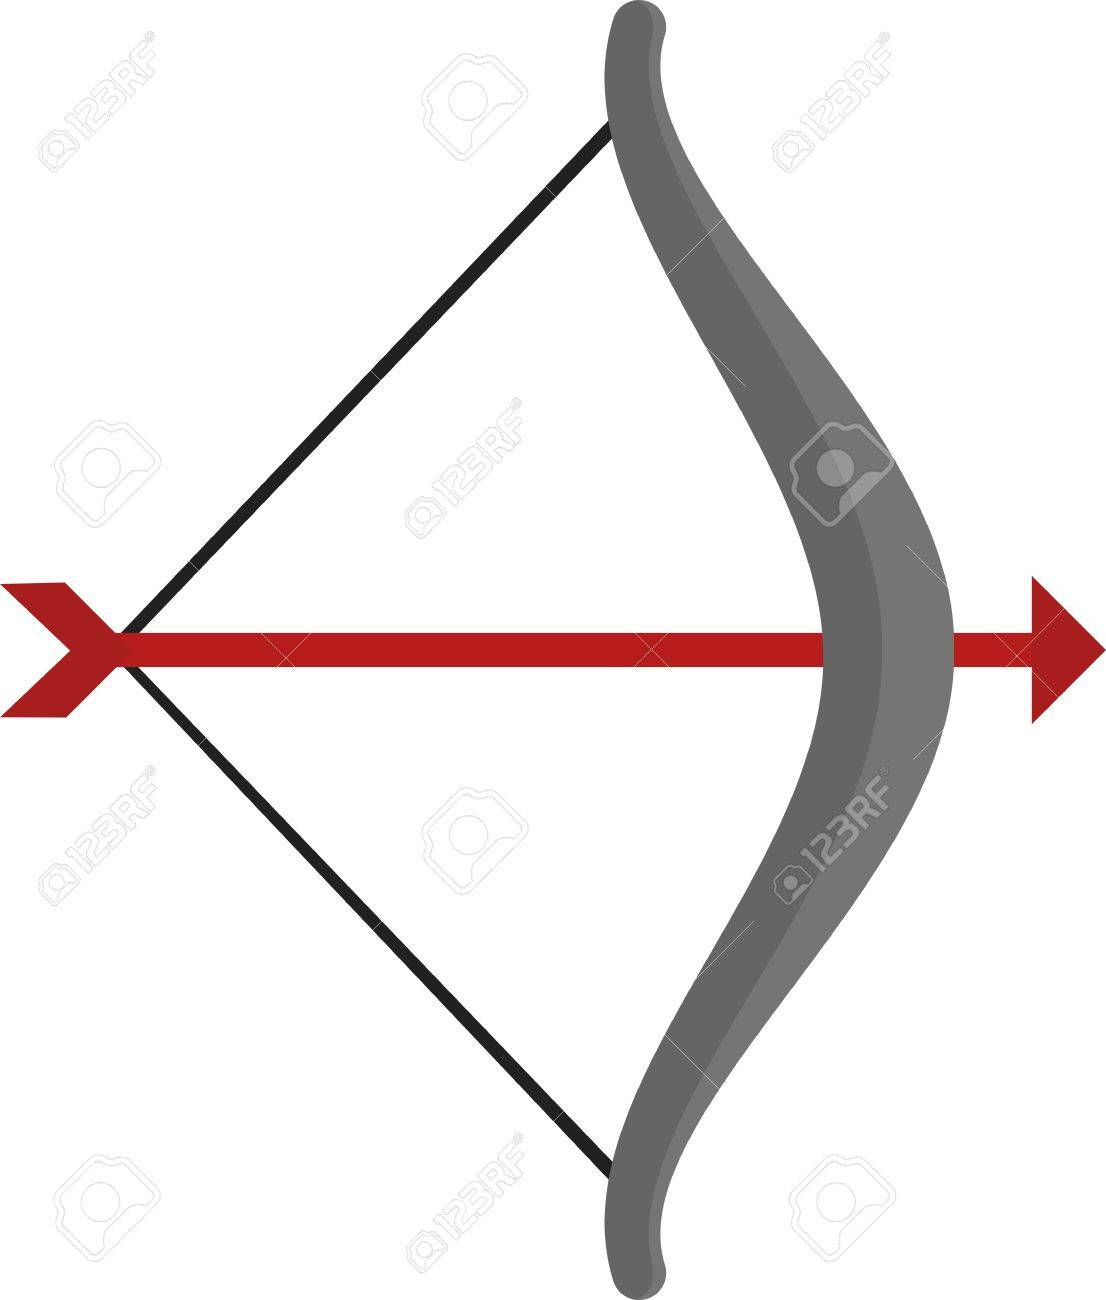 hight resolution of archery arrow bow sports icon vector image can also be used for